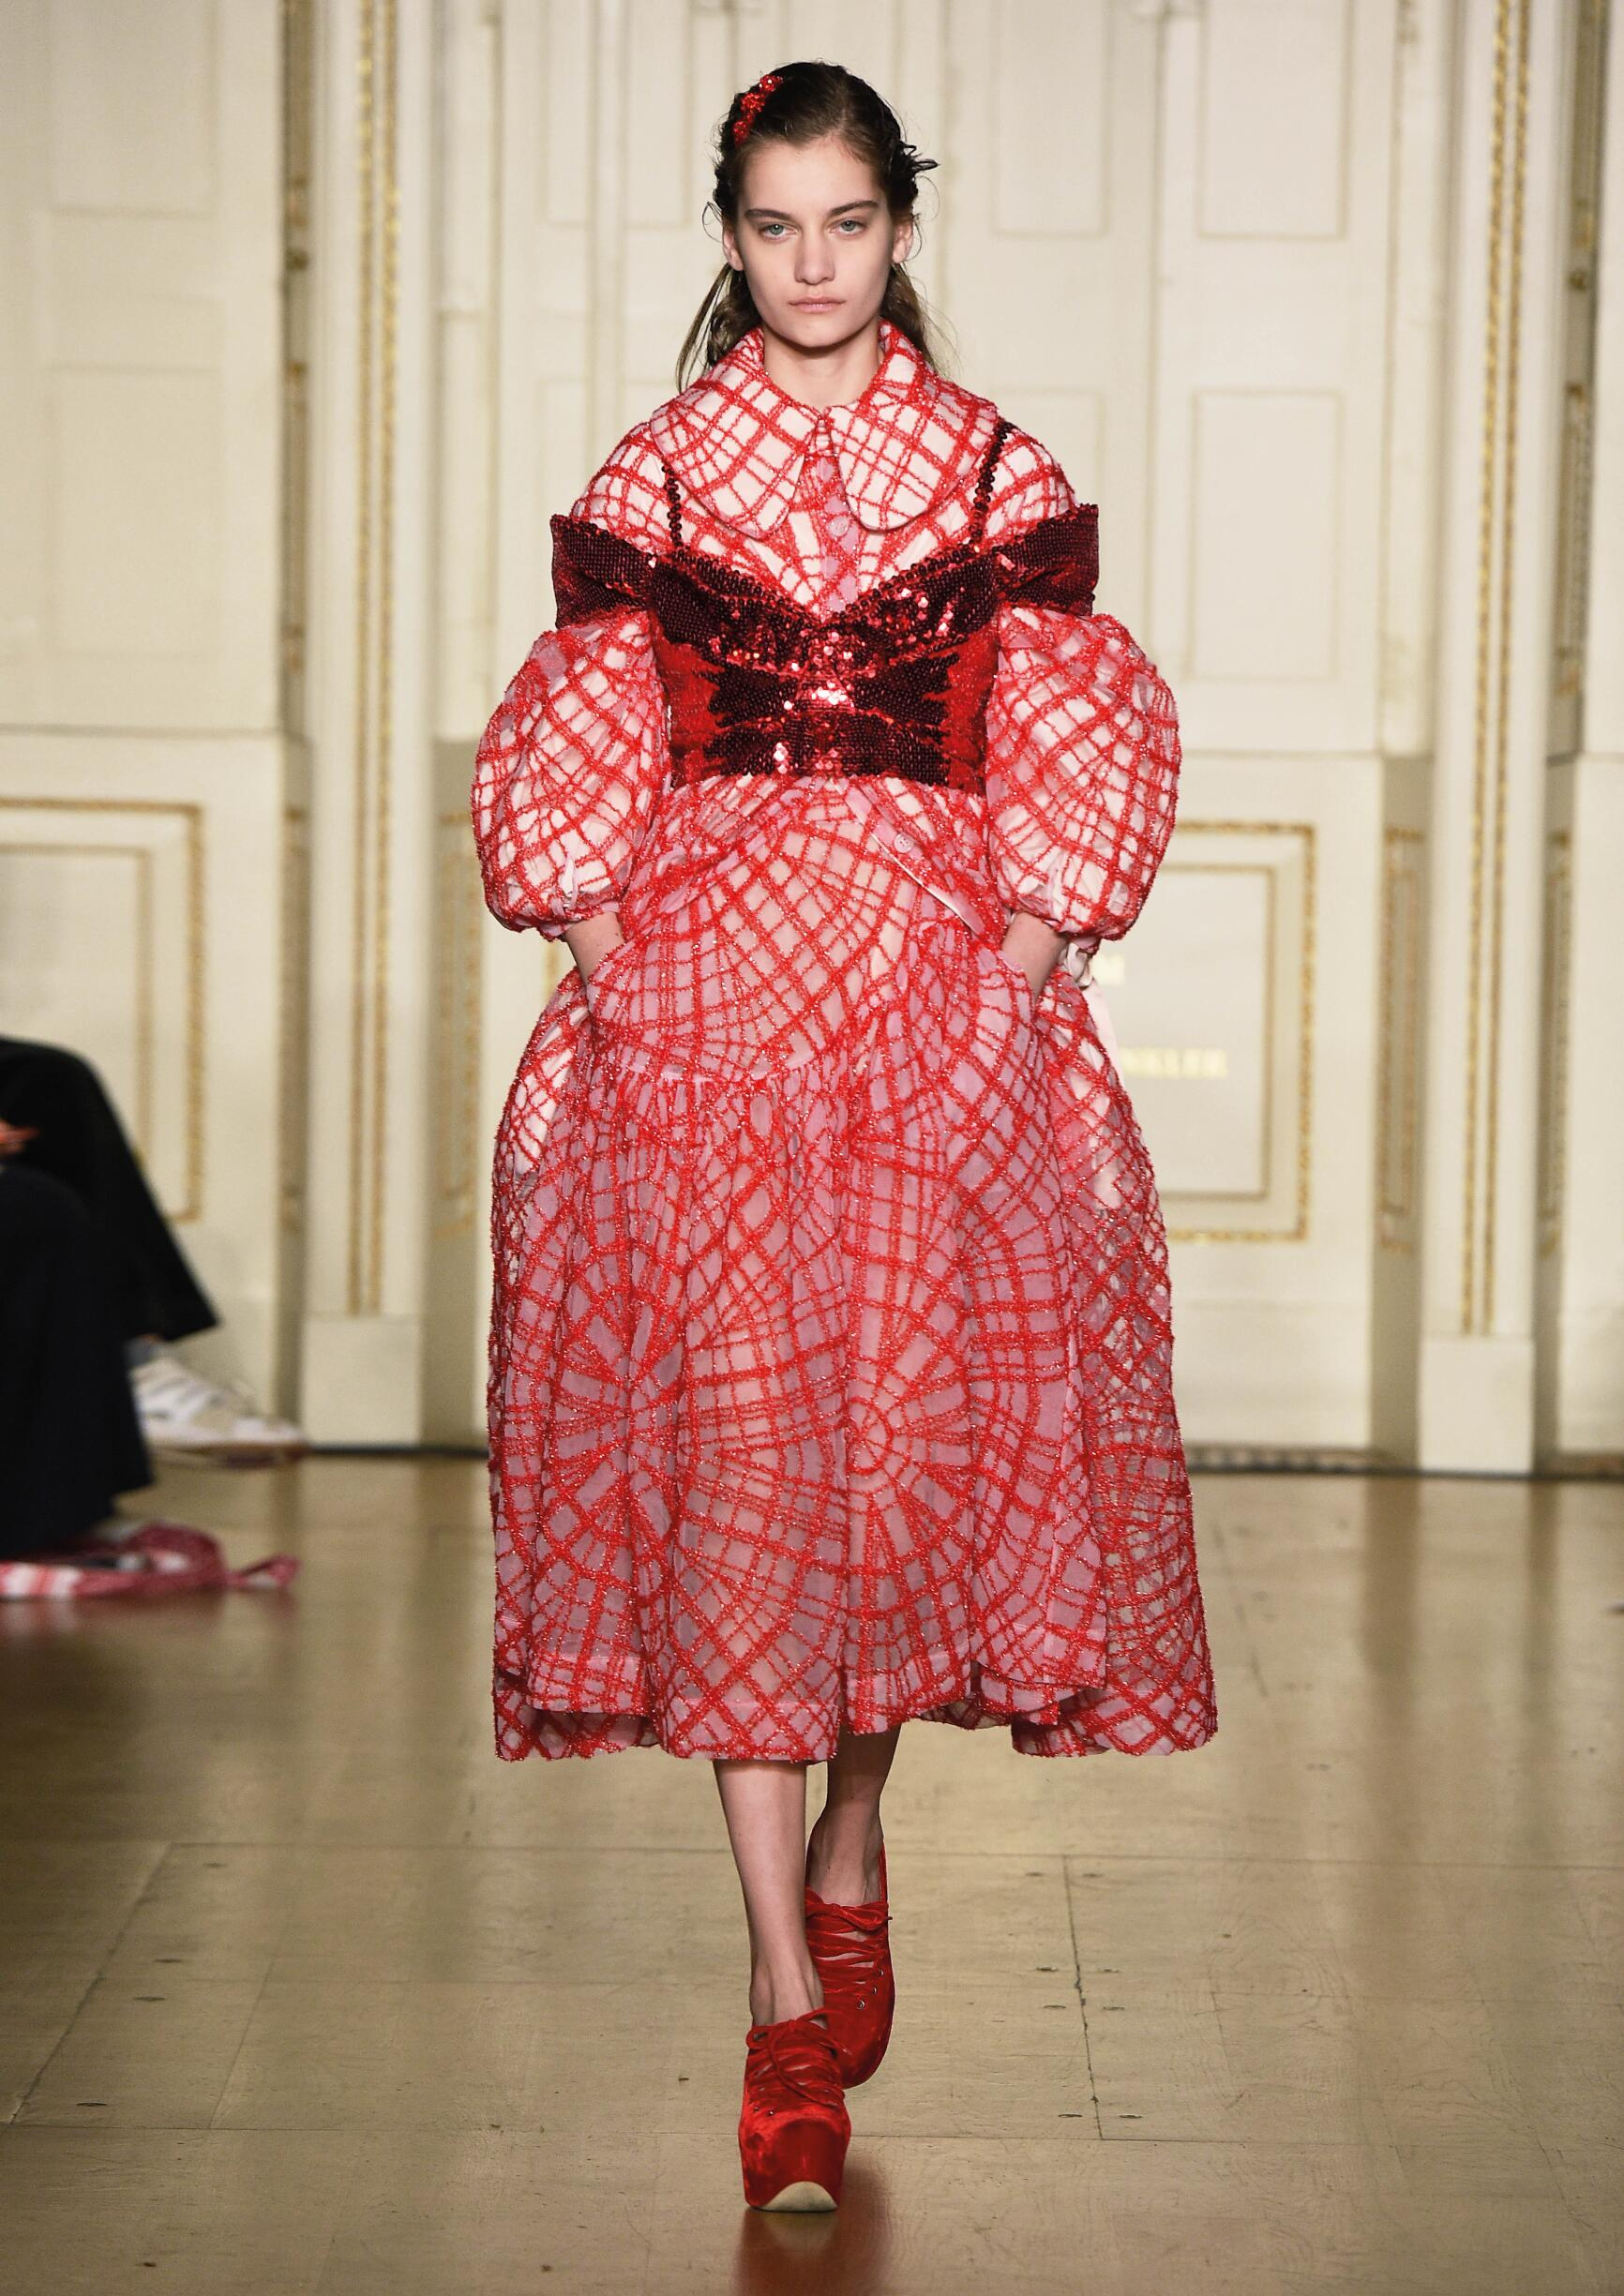 Woman FW 2019 Simone Rocha Show London Fashion Week